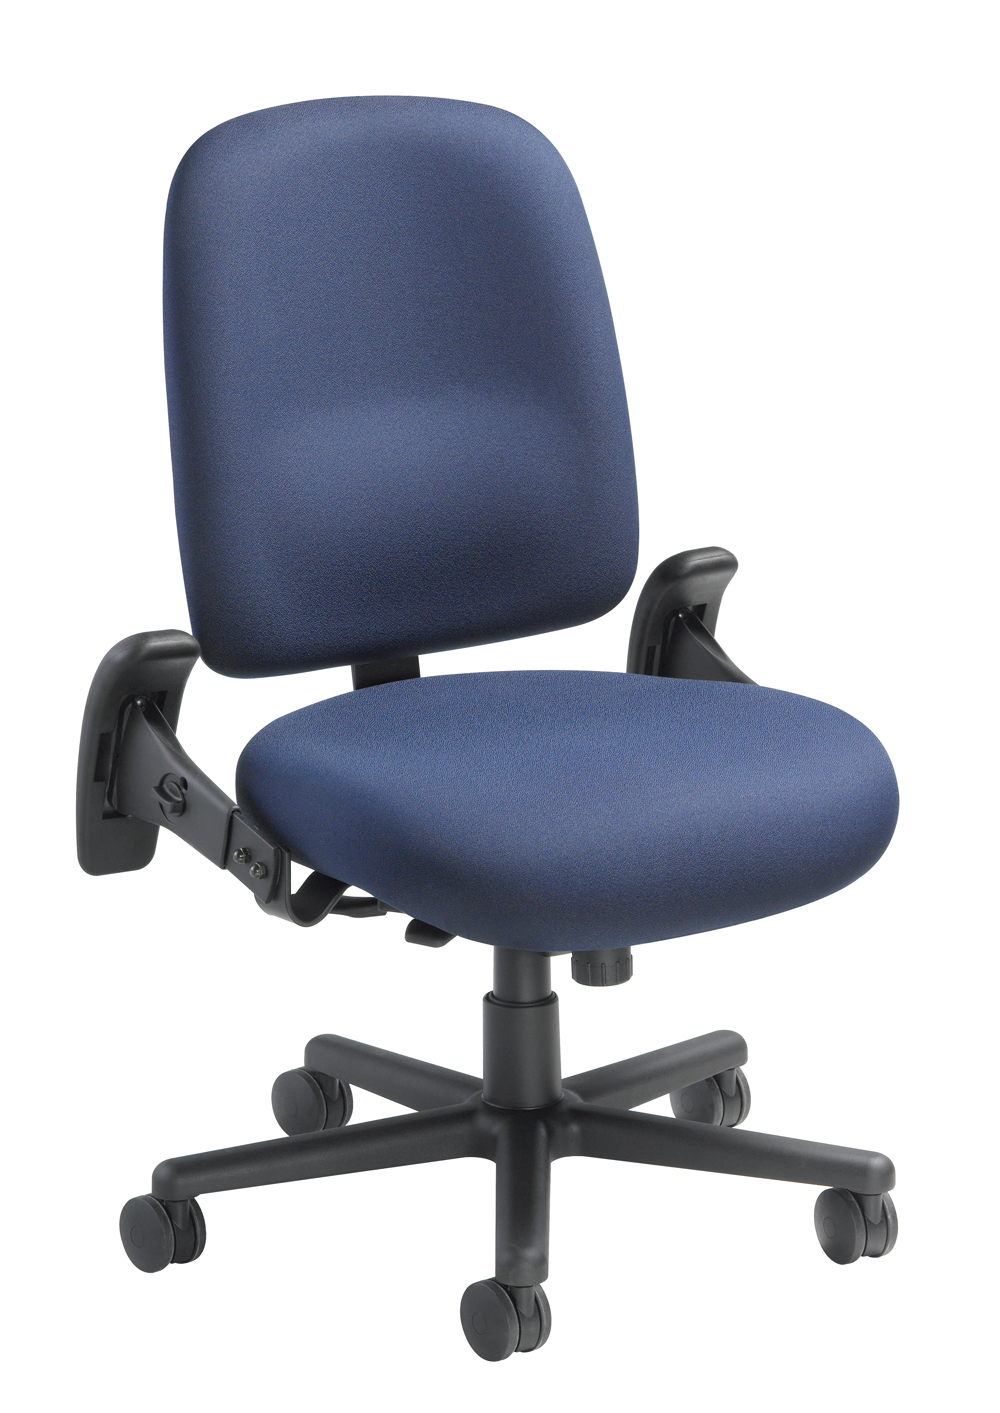 Tci Furniture Chairs Amp Seating Sherman Heavy Duty Chair